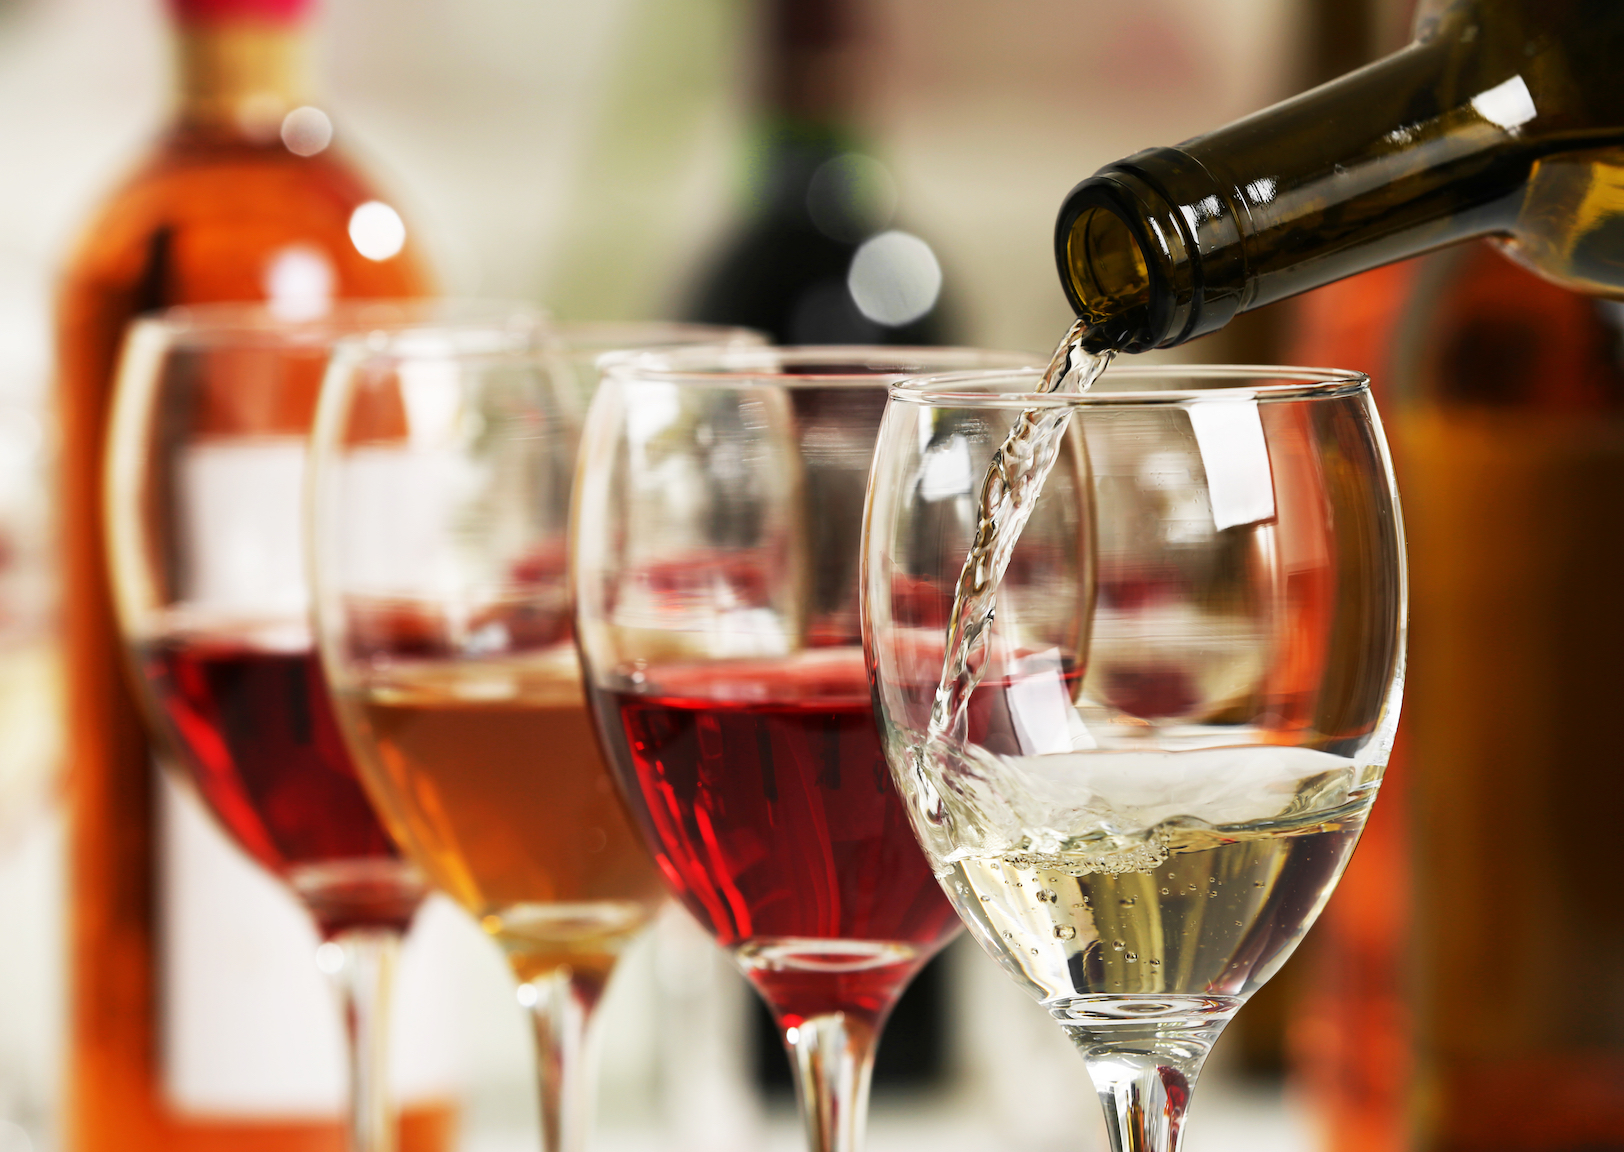 A new Oxford University study aims to answer the question of whether a screw cap bottle or corked bottle of wine tastes better.